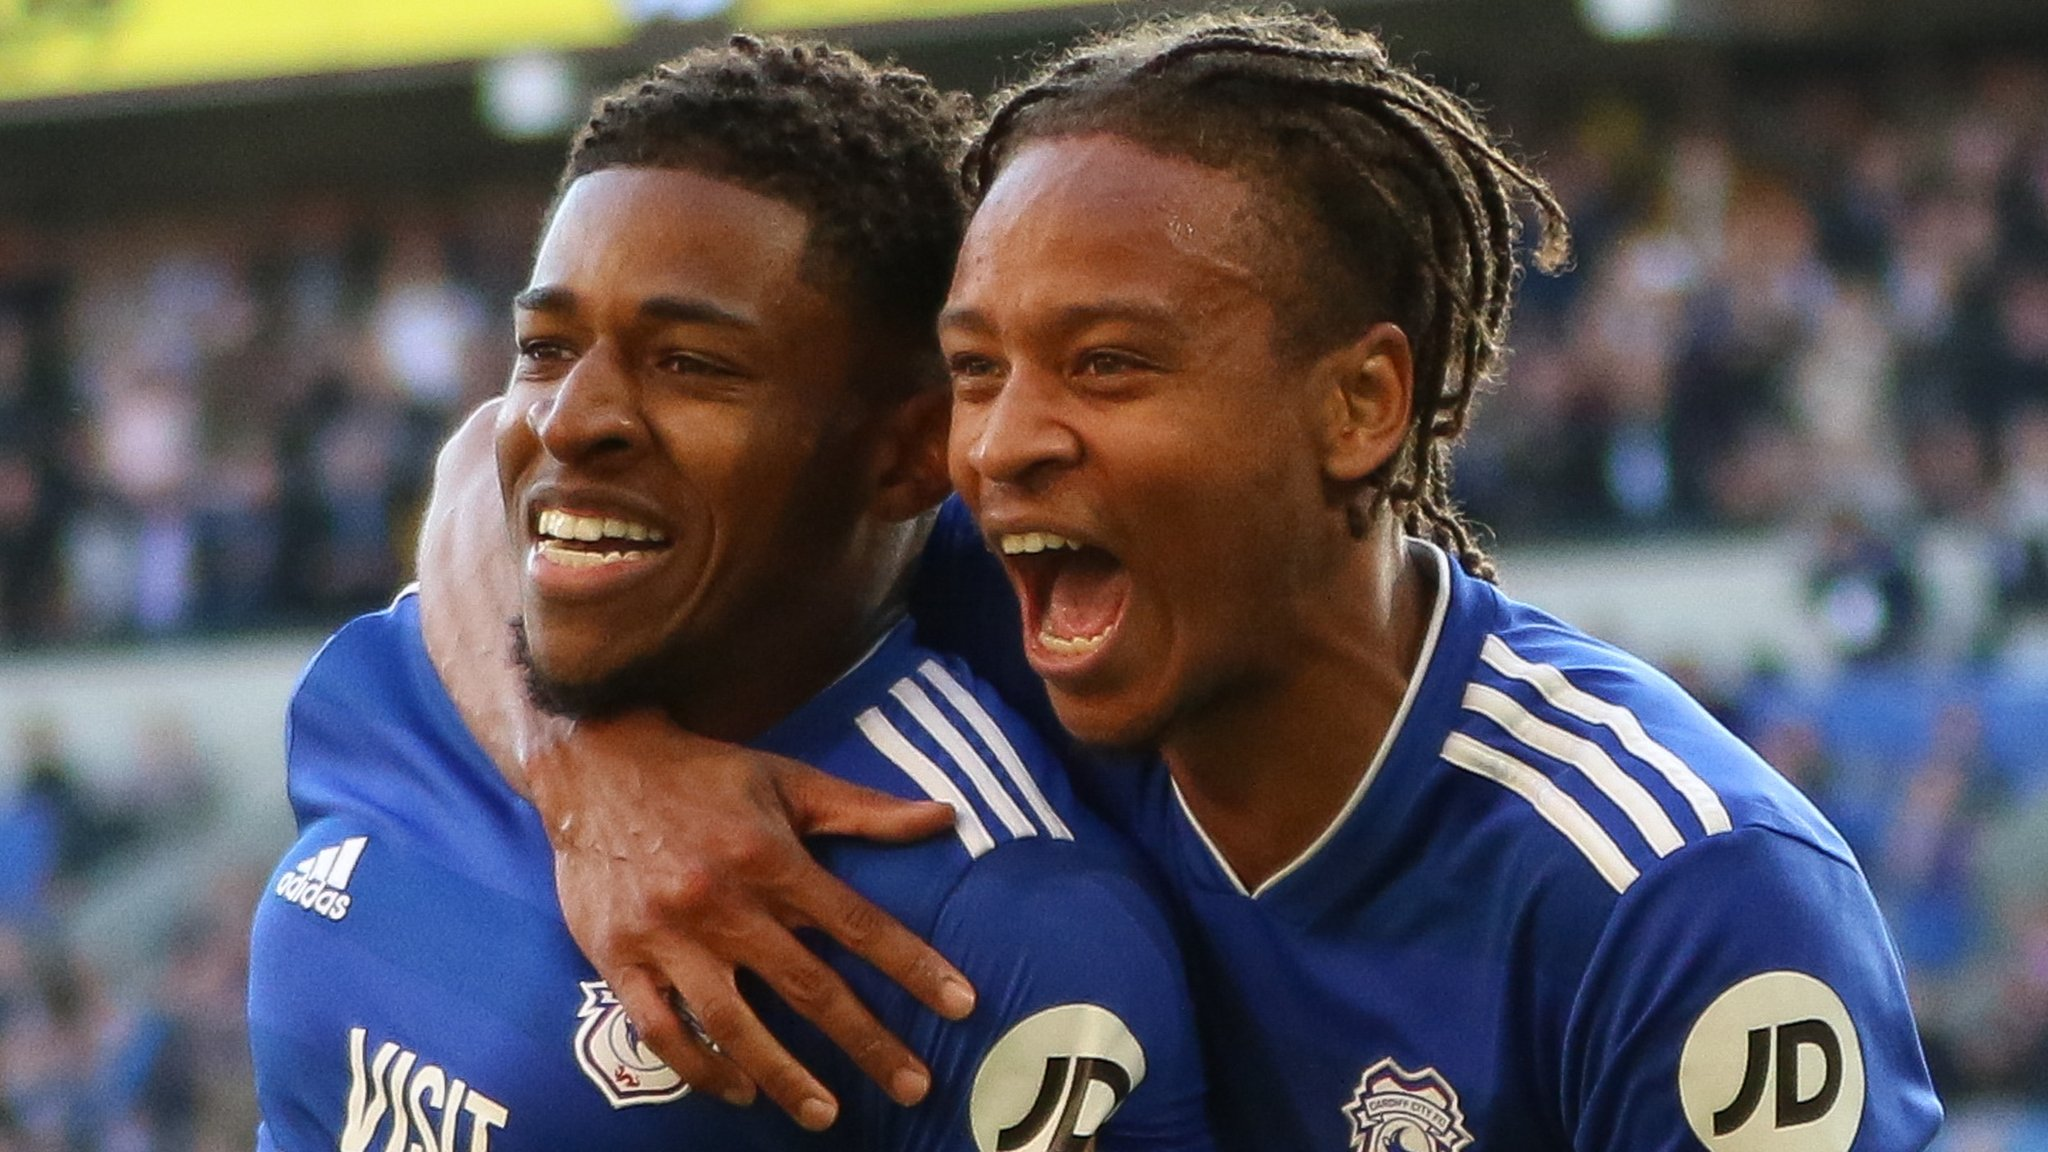 Bobby Reid: Neil Warnock's mind games helping us, says Cardiff forward